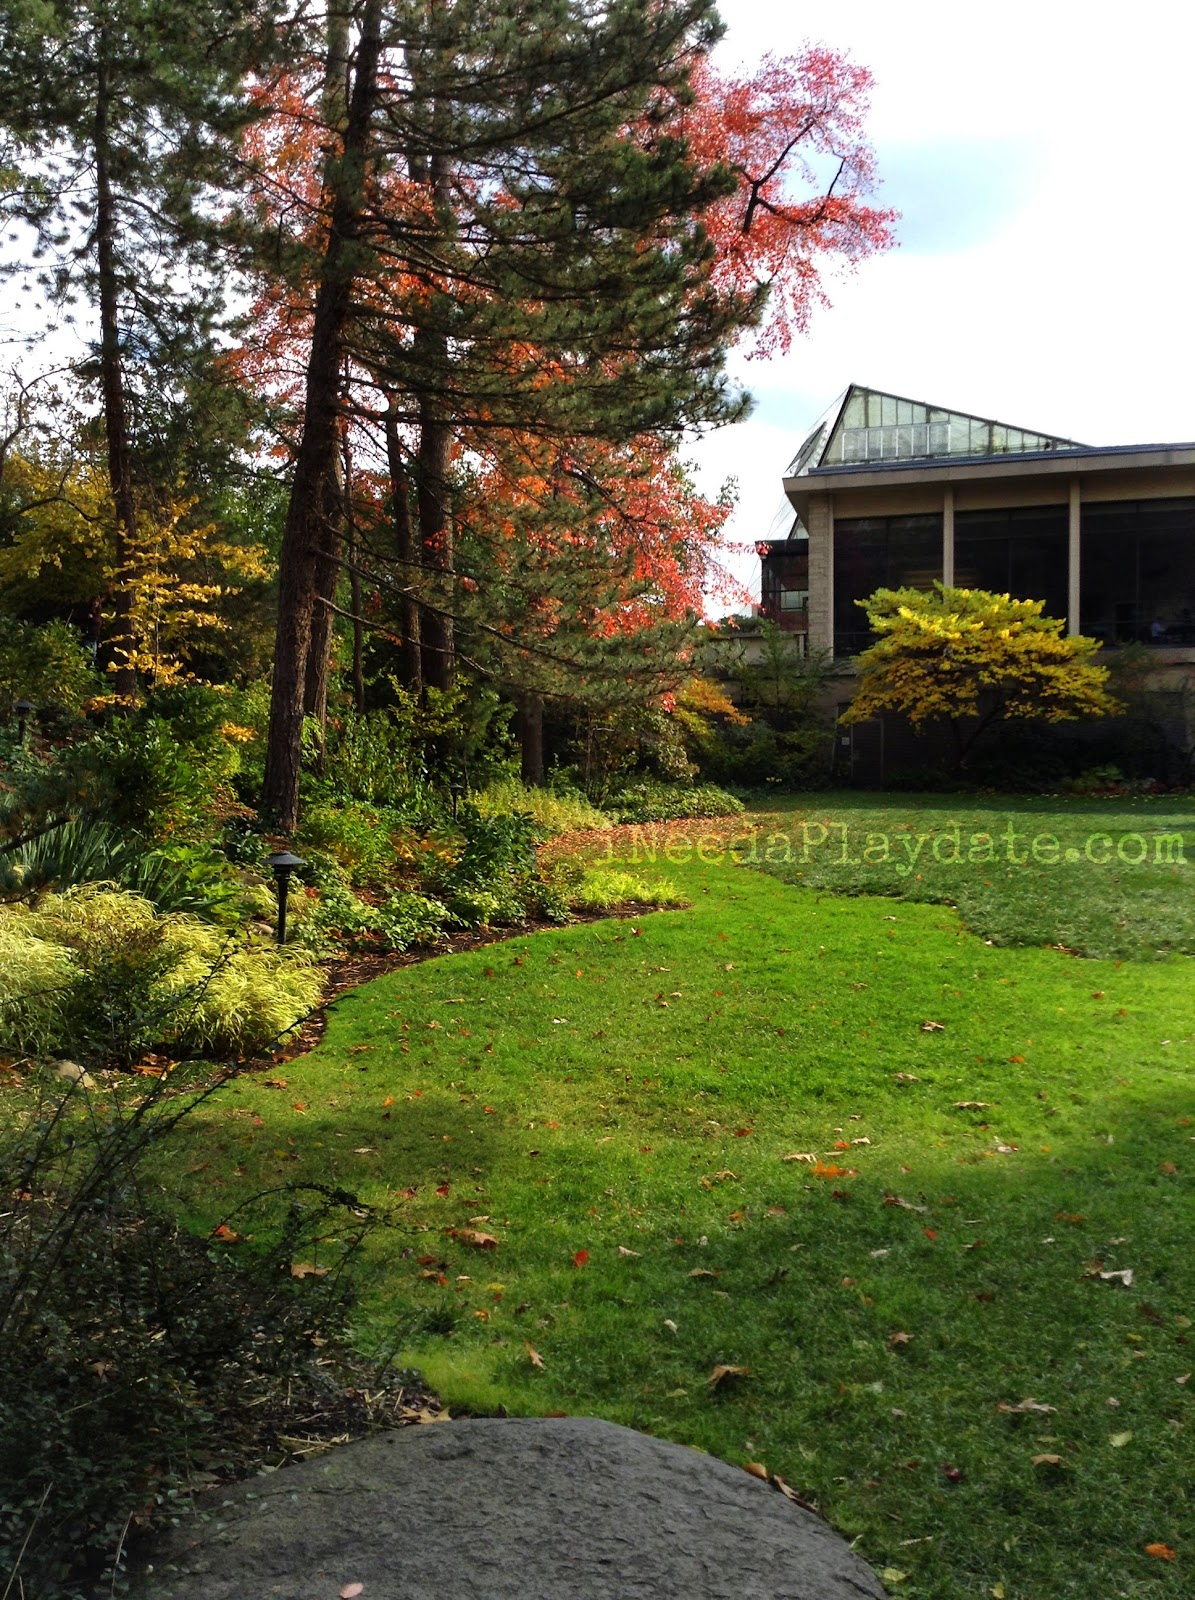 It 39 S Colorfall At The Cleveland Botanical Gardens Ineed A Playdate